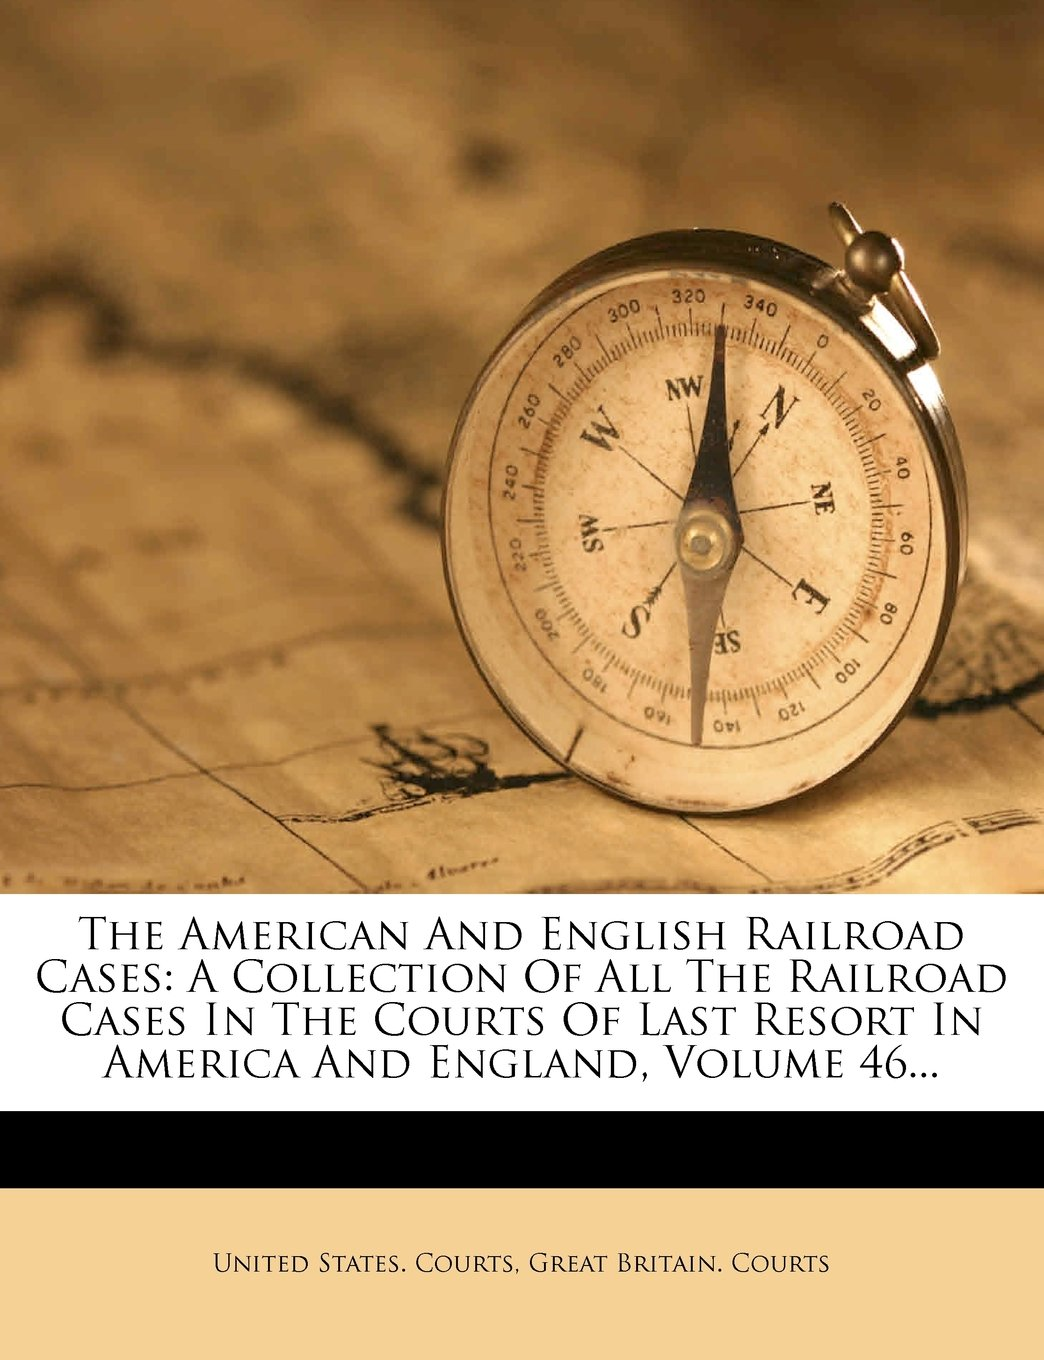 The American And English Railroad Cases: A Collection Of All The Railroad Cases In The Courts Of Last Resort In America And England, Volume 46... PDF